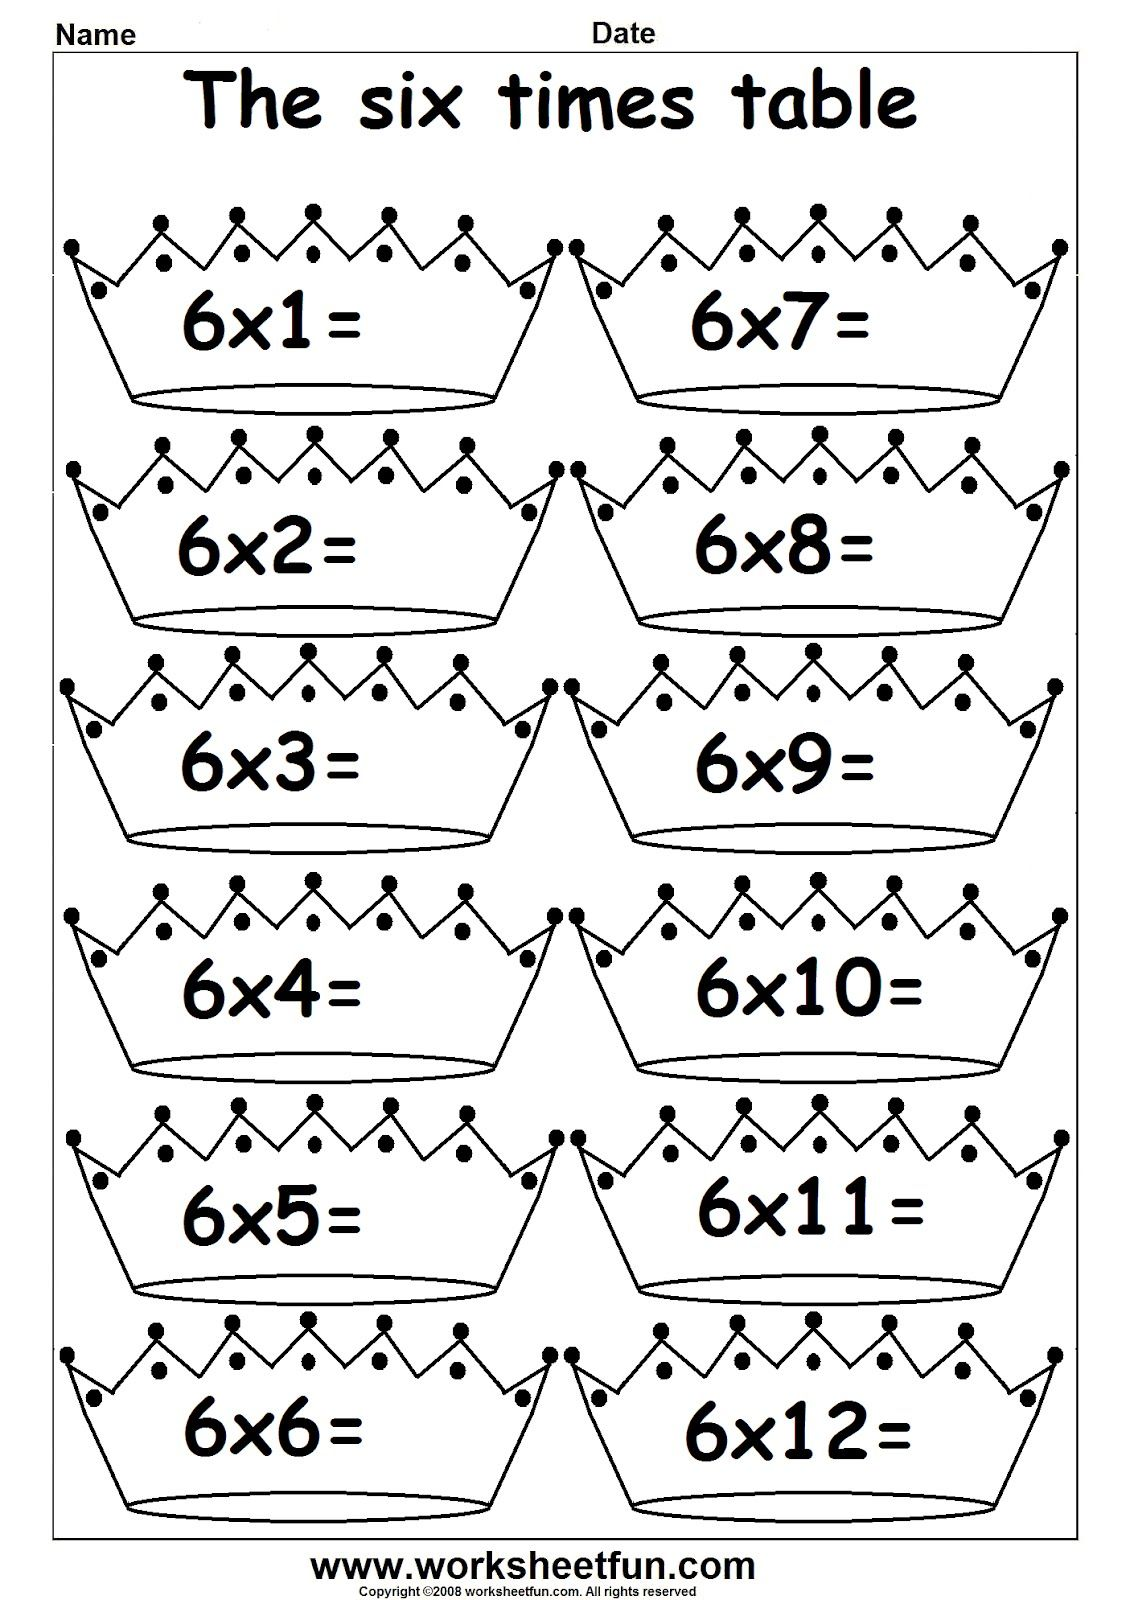 Maths 6 times table worksheets multiplication maths worksheets for year 2 age 6 7 english for Times table quiz 6